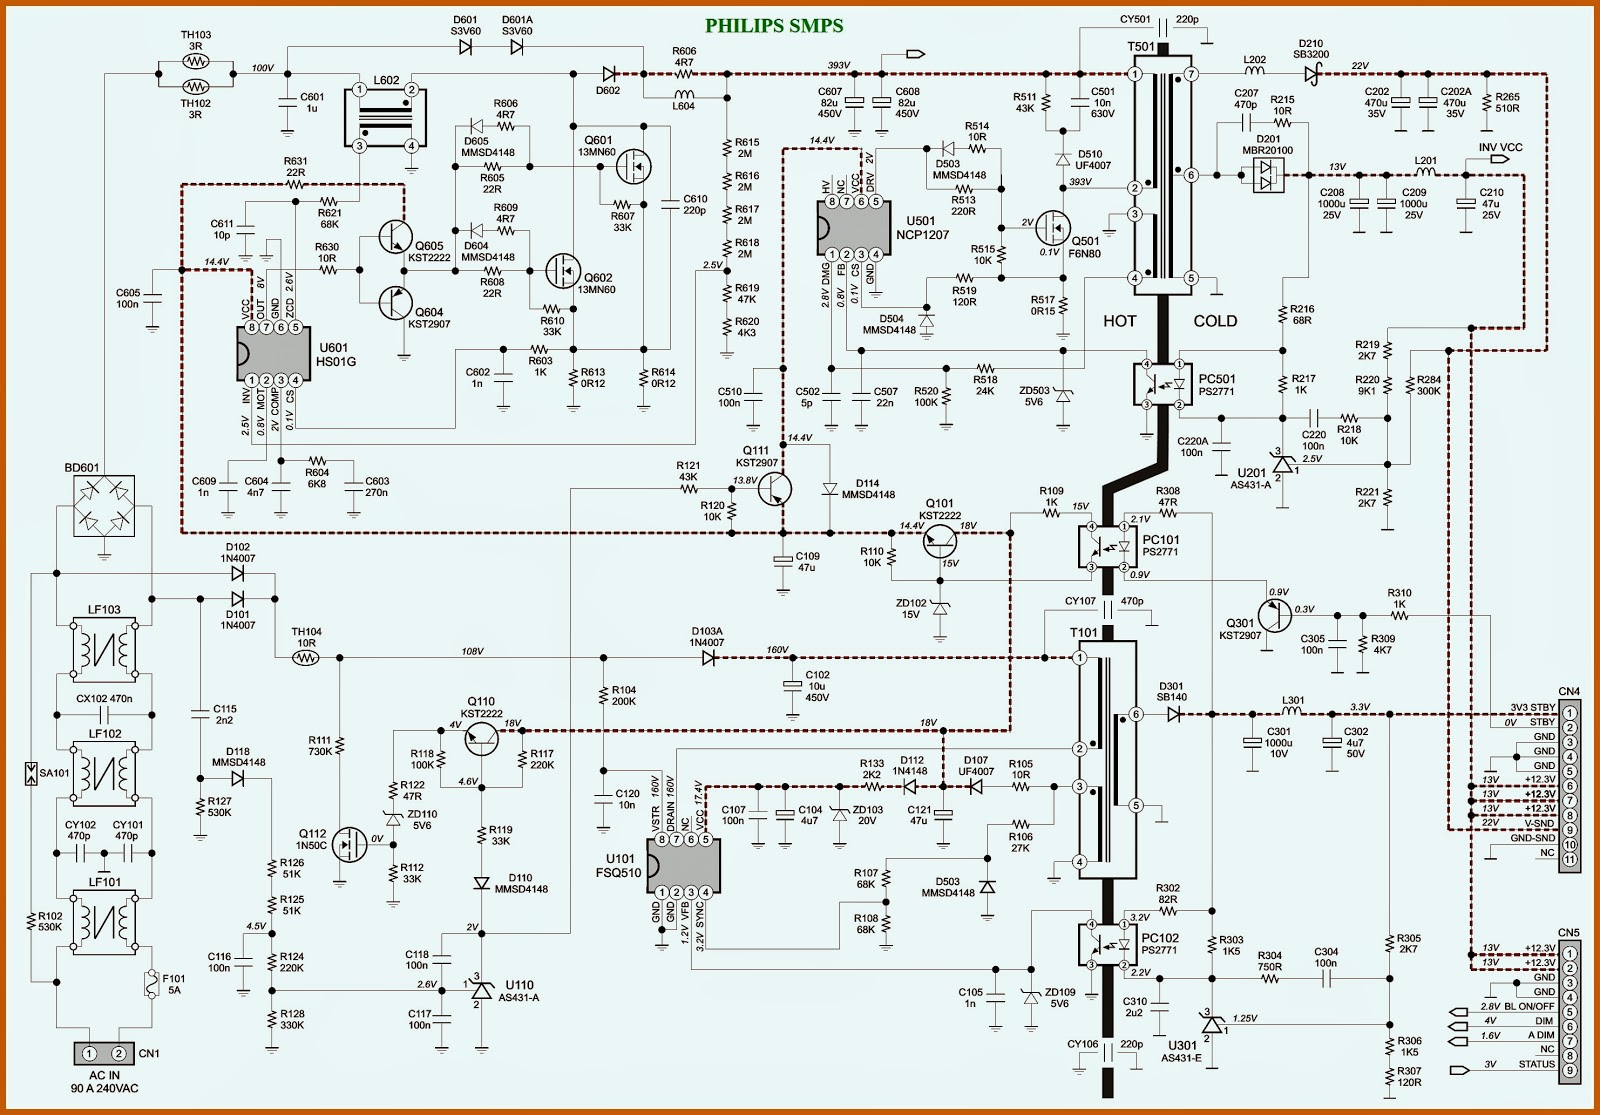 PHILIPS 1 philips 40pfl3606 lcd tv power supply schematic electro help samsung tv wiring diagram at readyjetset.co